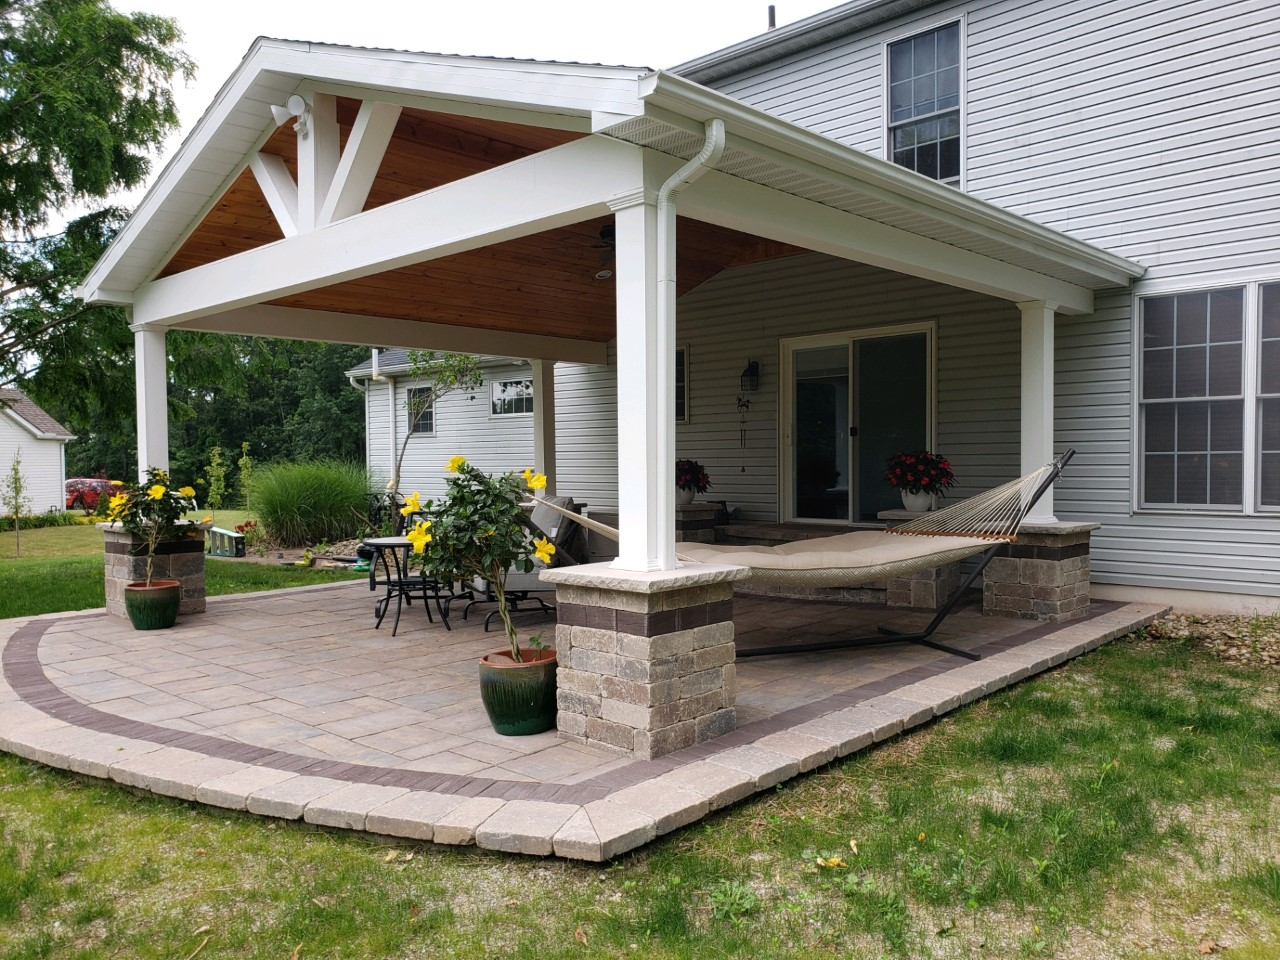 Ready-for-a-new-covered-porch-?